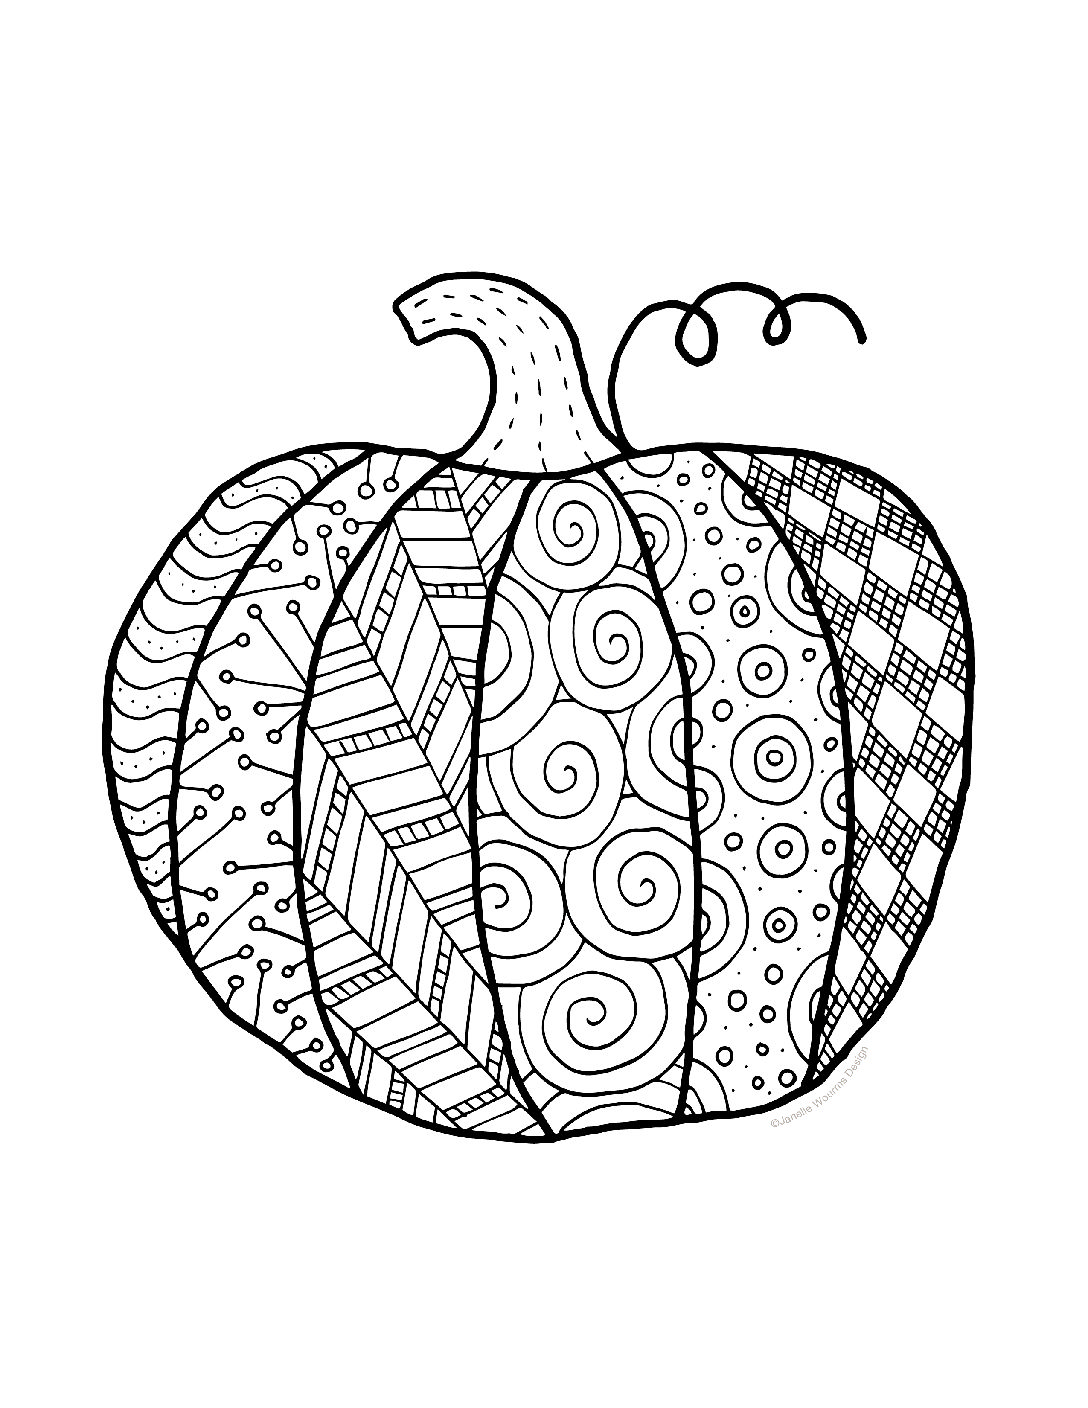 Pumpkin Coloring Page Free Printable For Personal Use Finding Zest